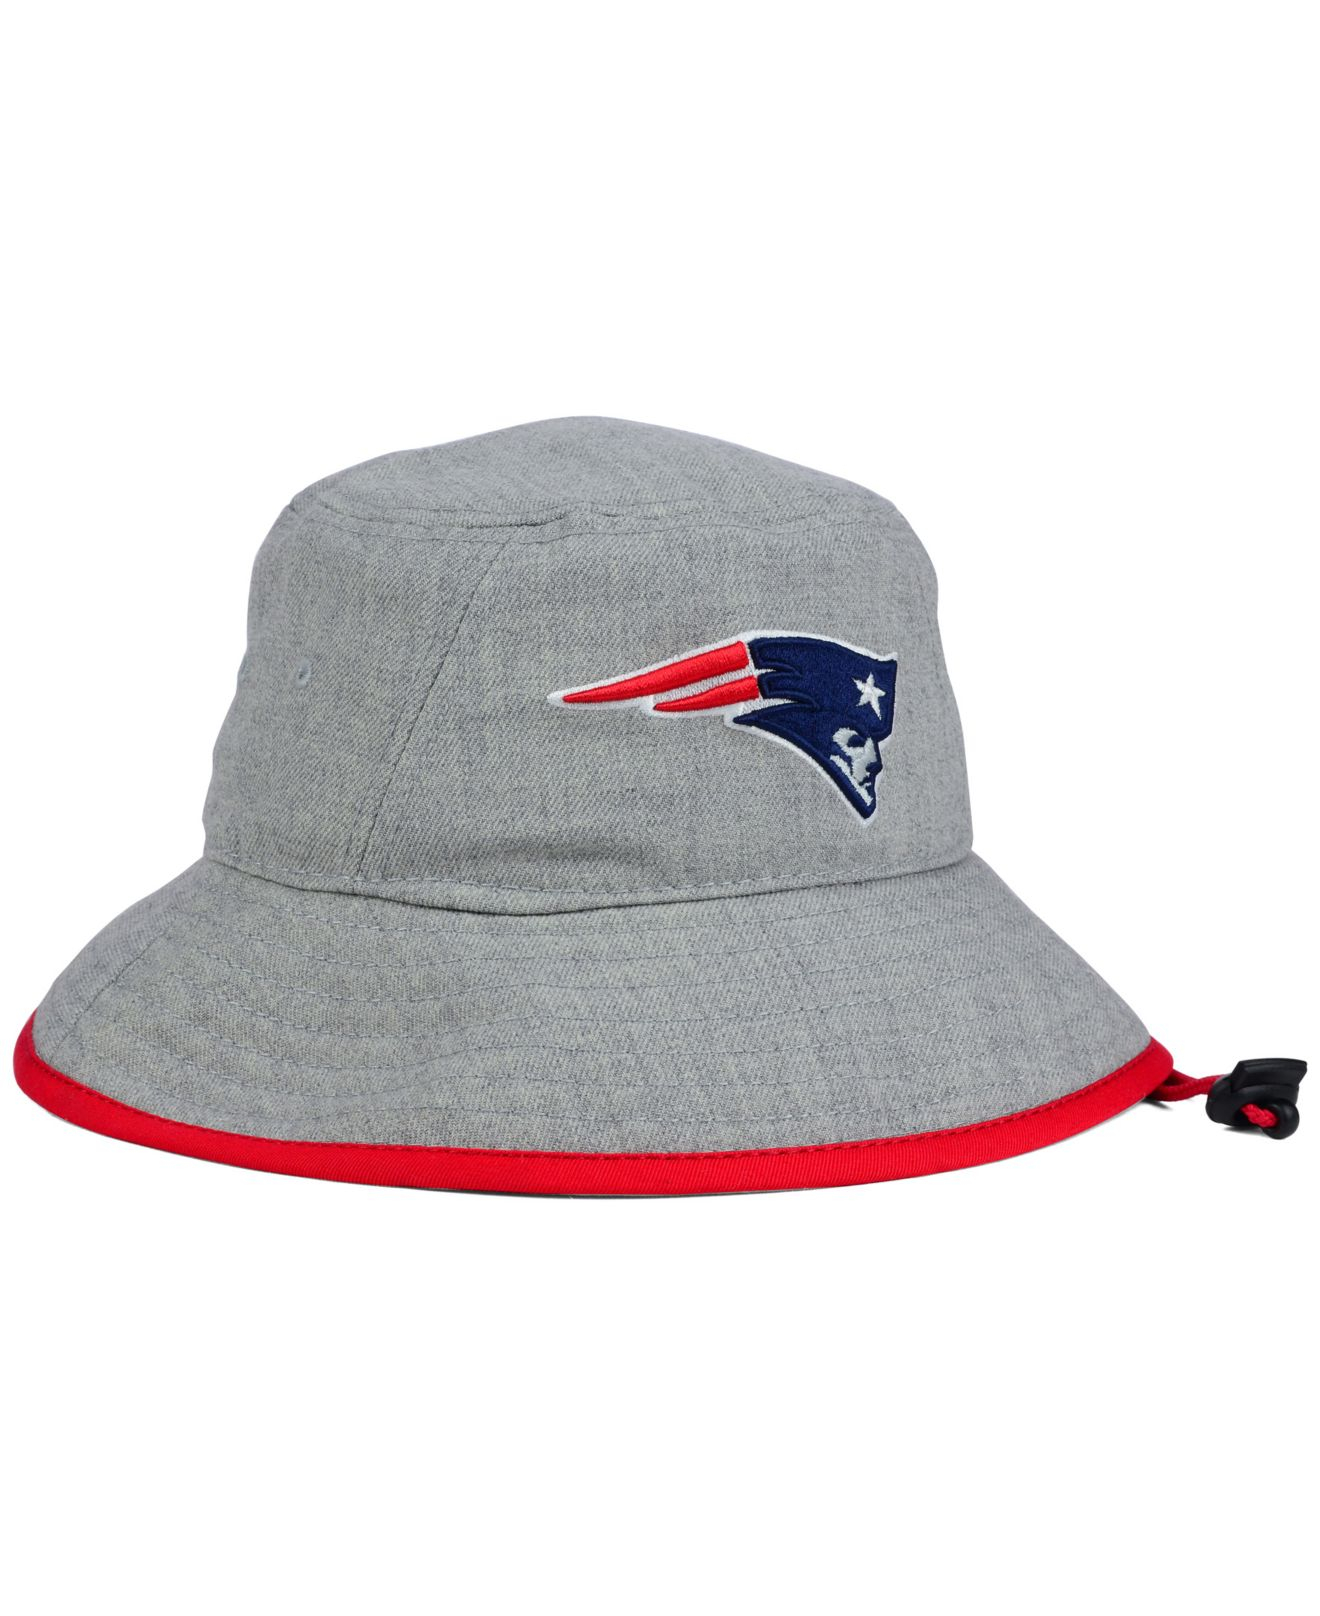 the latest e4dcb cd5d6 ... wholesale lyst ktz new england patriots nfl heather gray bucket hat in  gray 2fd11 469cf